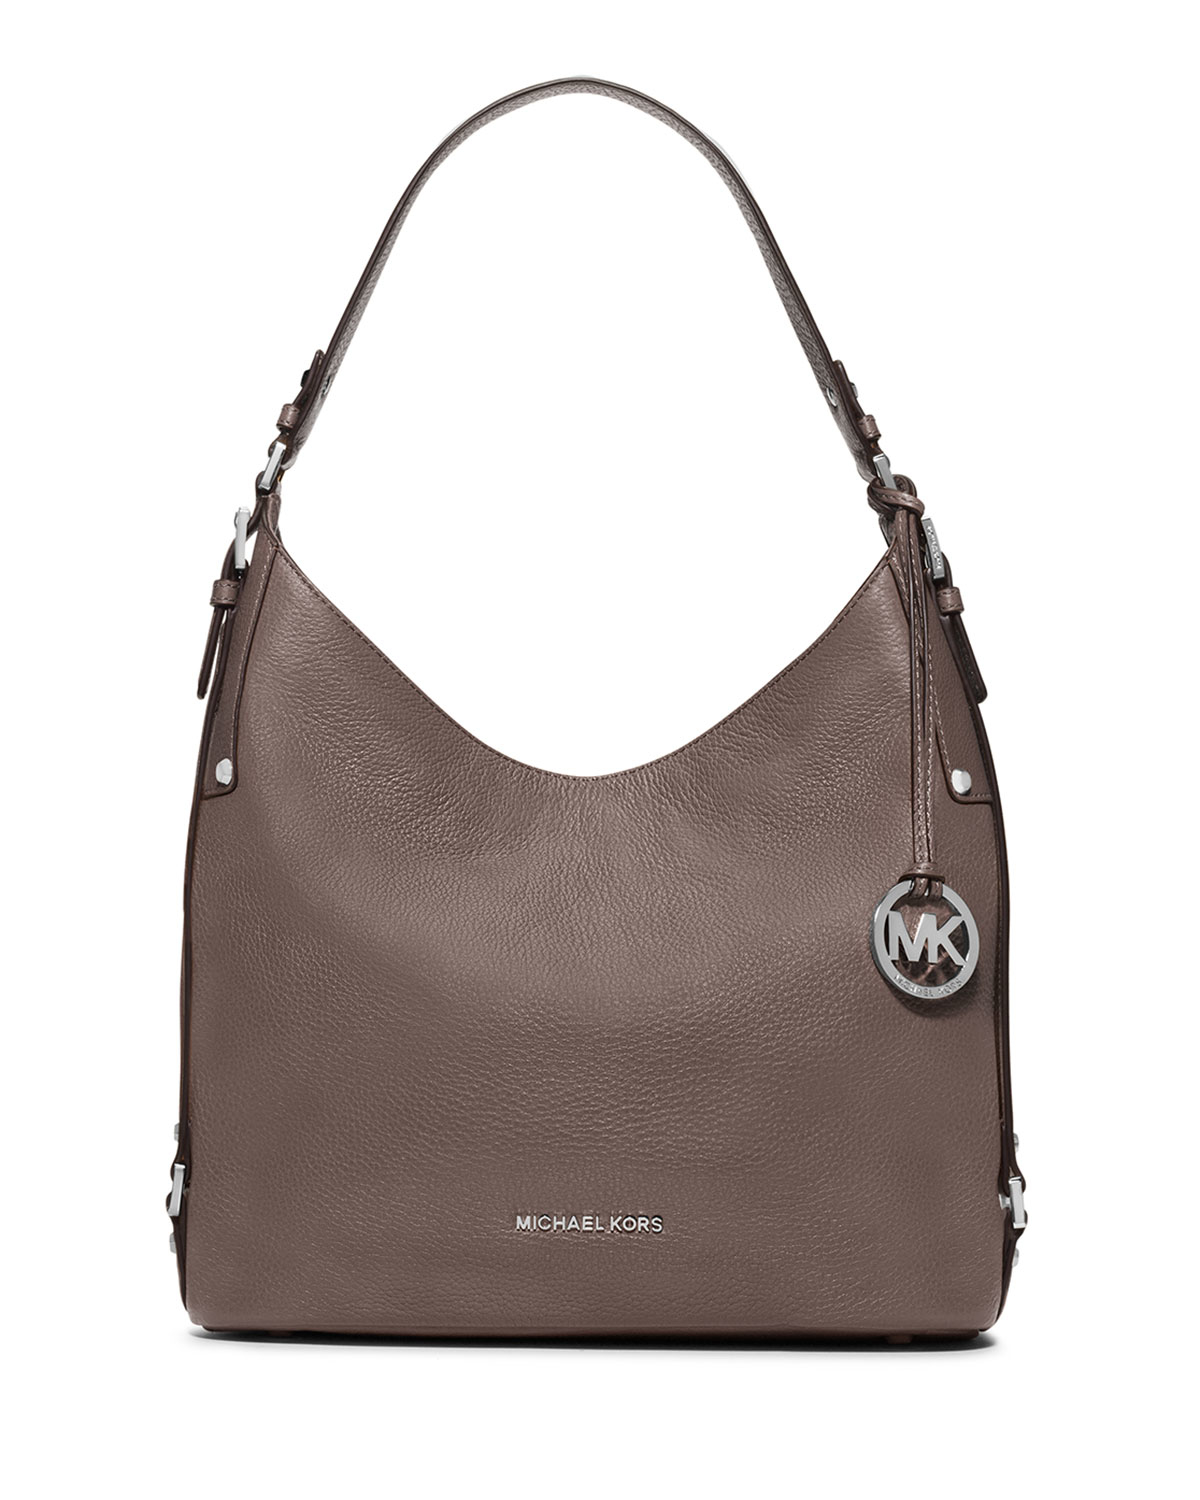 michael kors tasche bedford details about michael kors tasche umh nge tasche bedford gusset